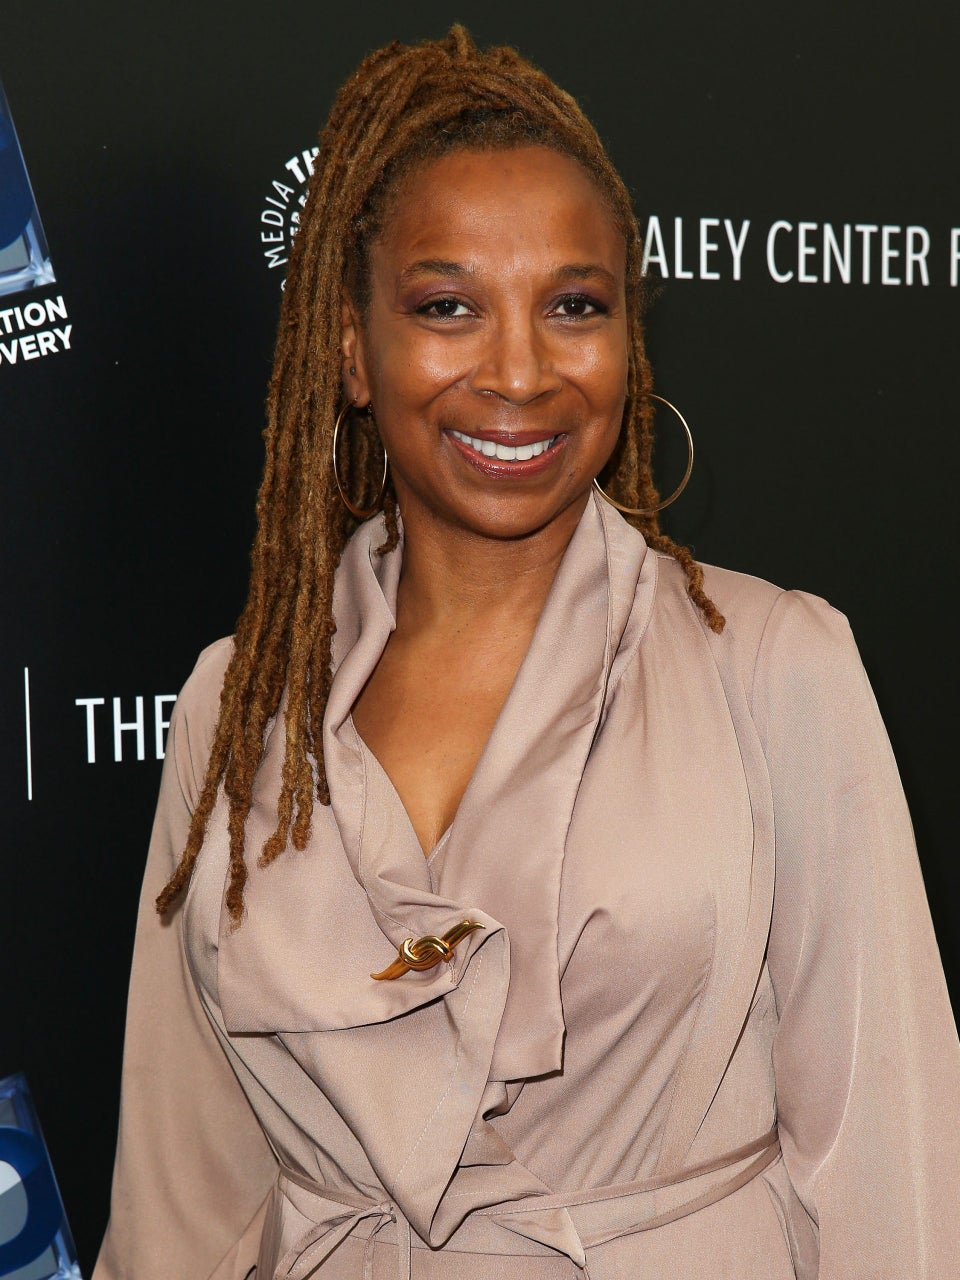 Kimberlé Crenshaw Guest-Editing Special 'Say Her Name' Issue Of 'Chime For Change' Zine